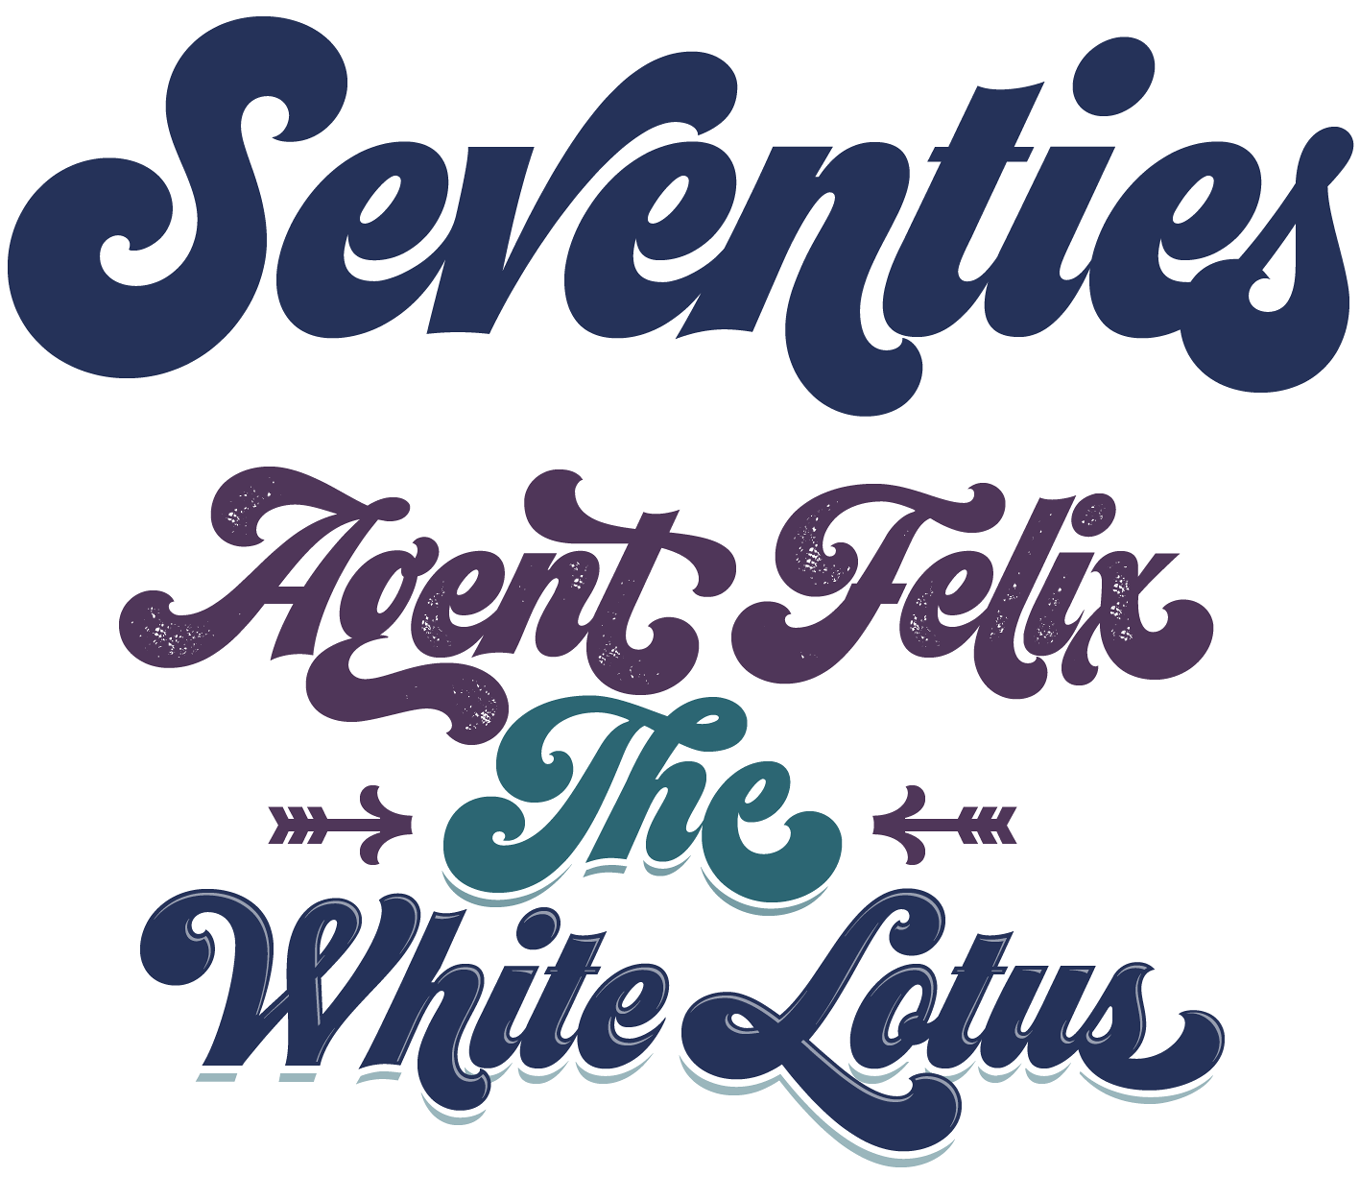 Seventies Font Sample